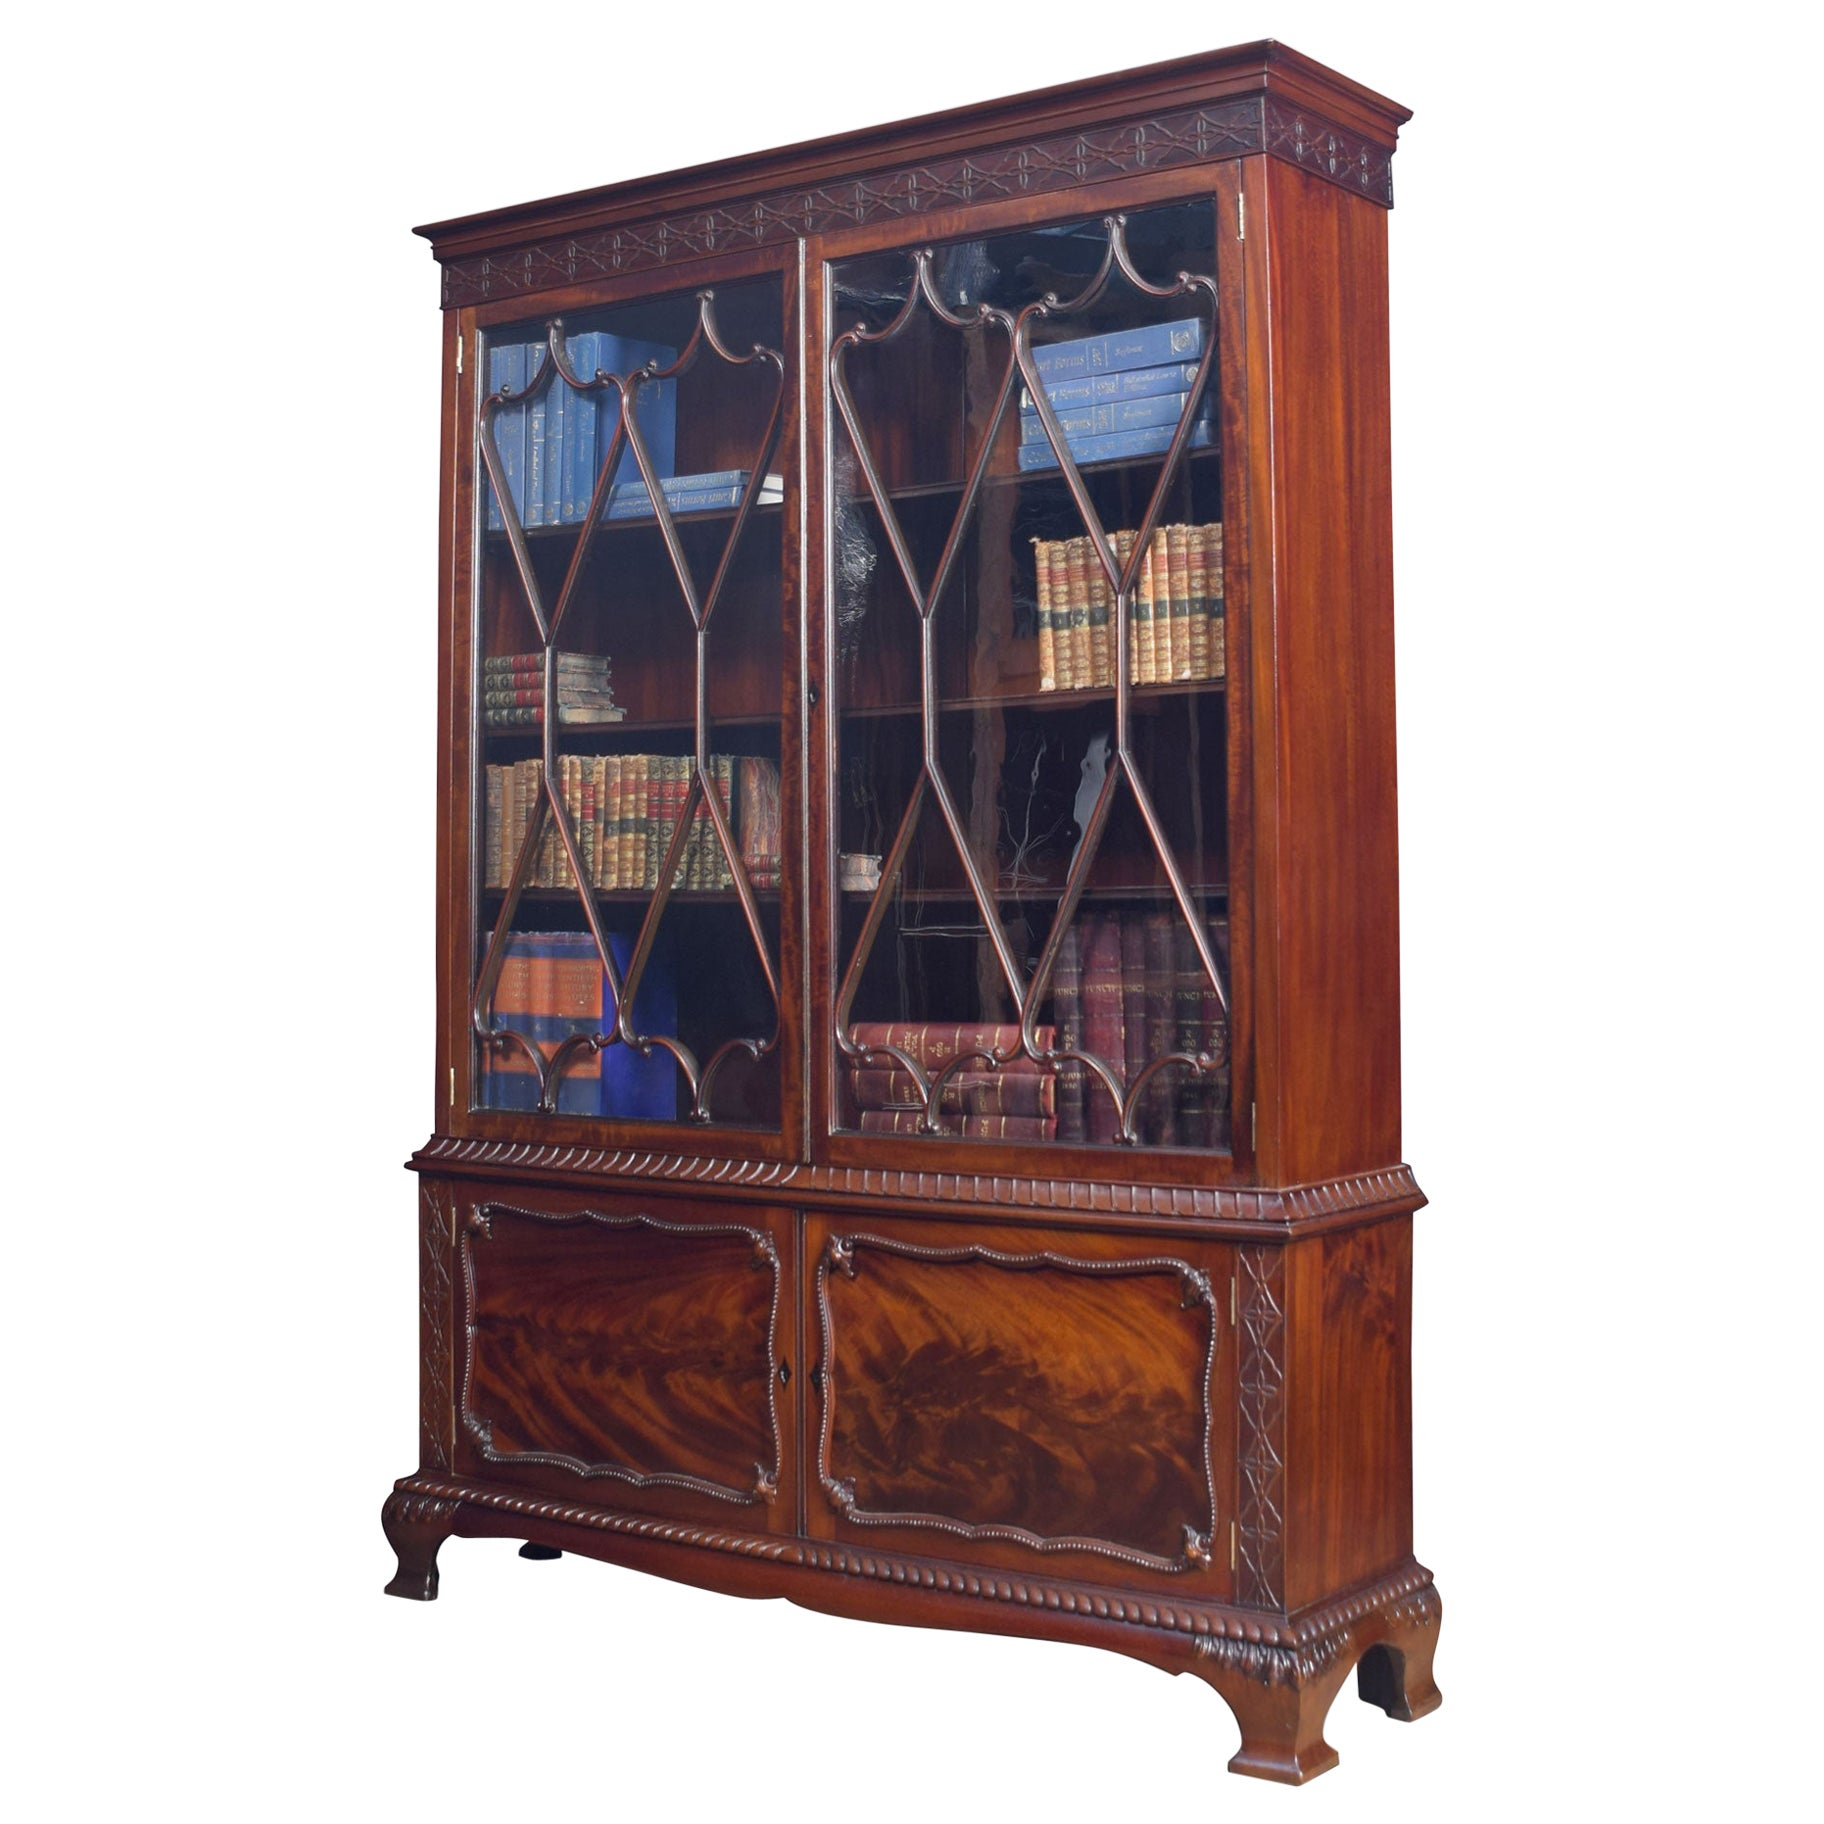 Chippendale Revival Mahogany Bookcase